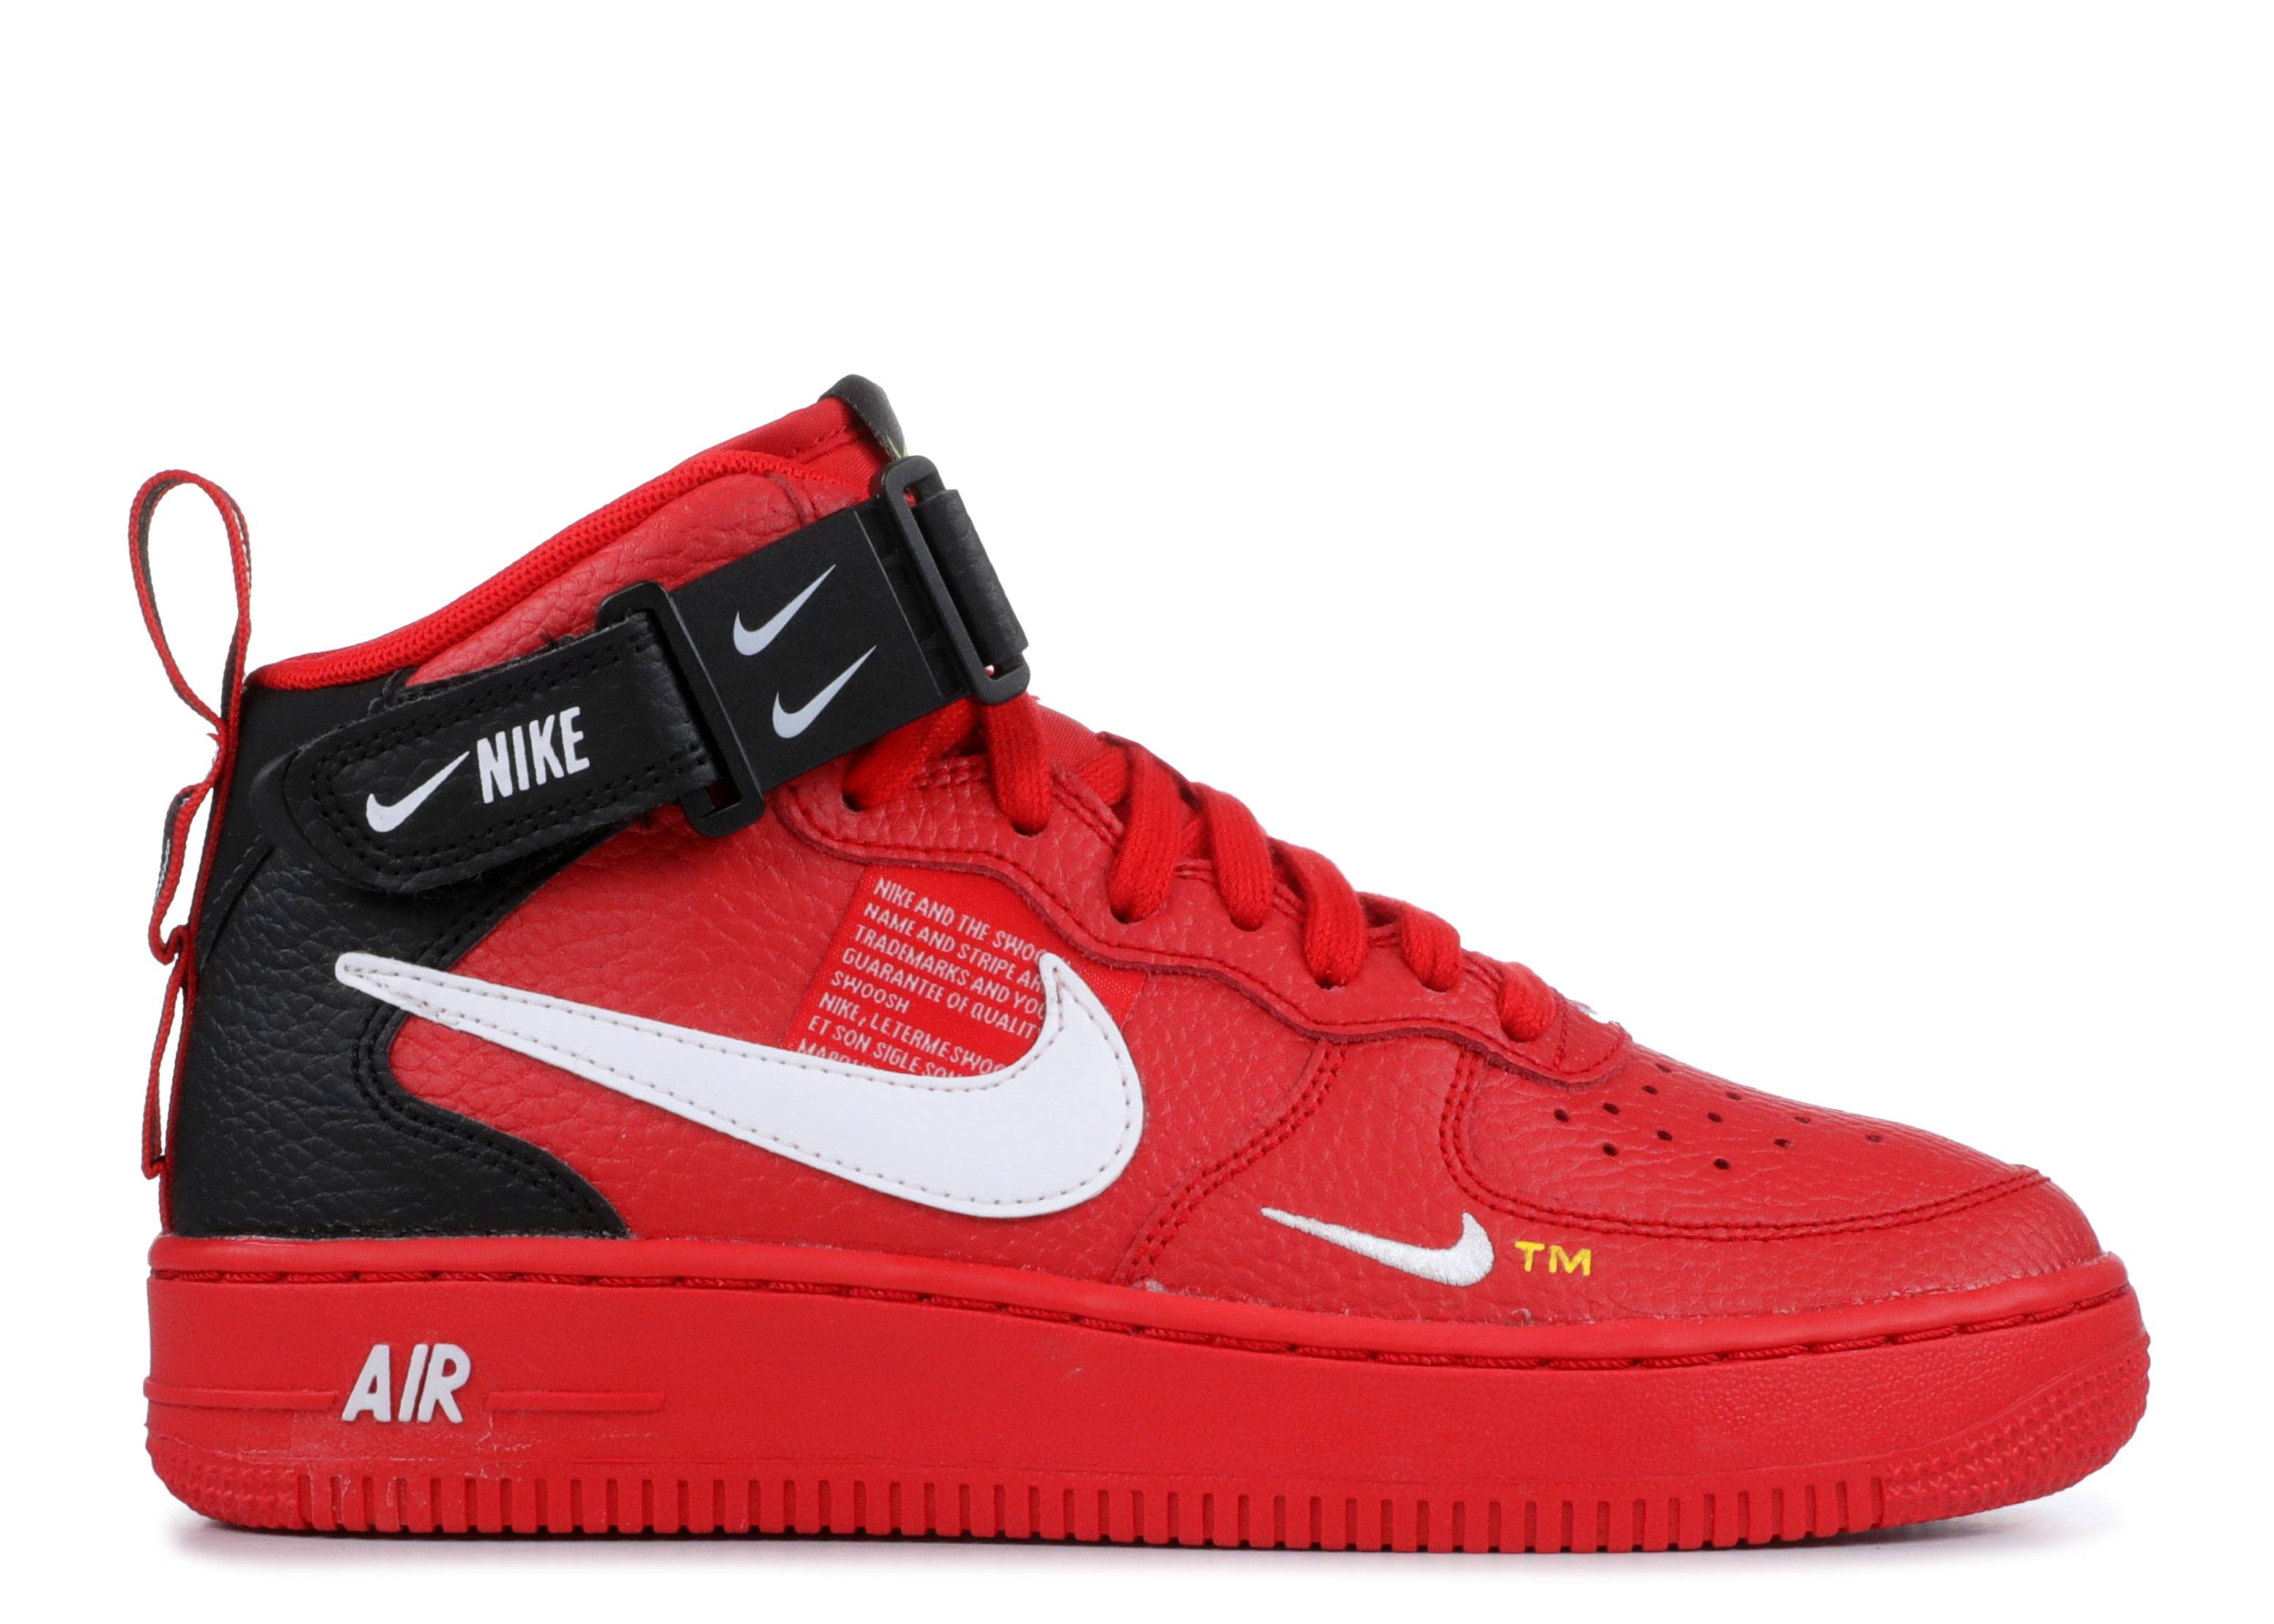 49c281be7c0d0f air force 1 mid lv8 (gs)